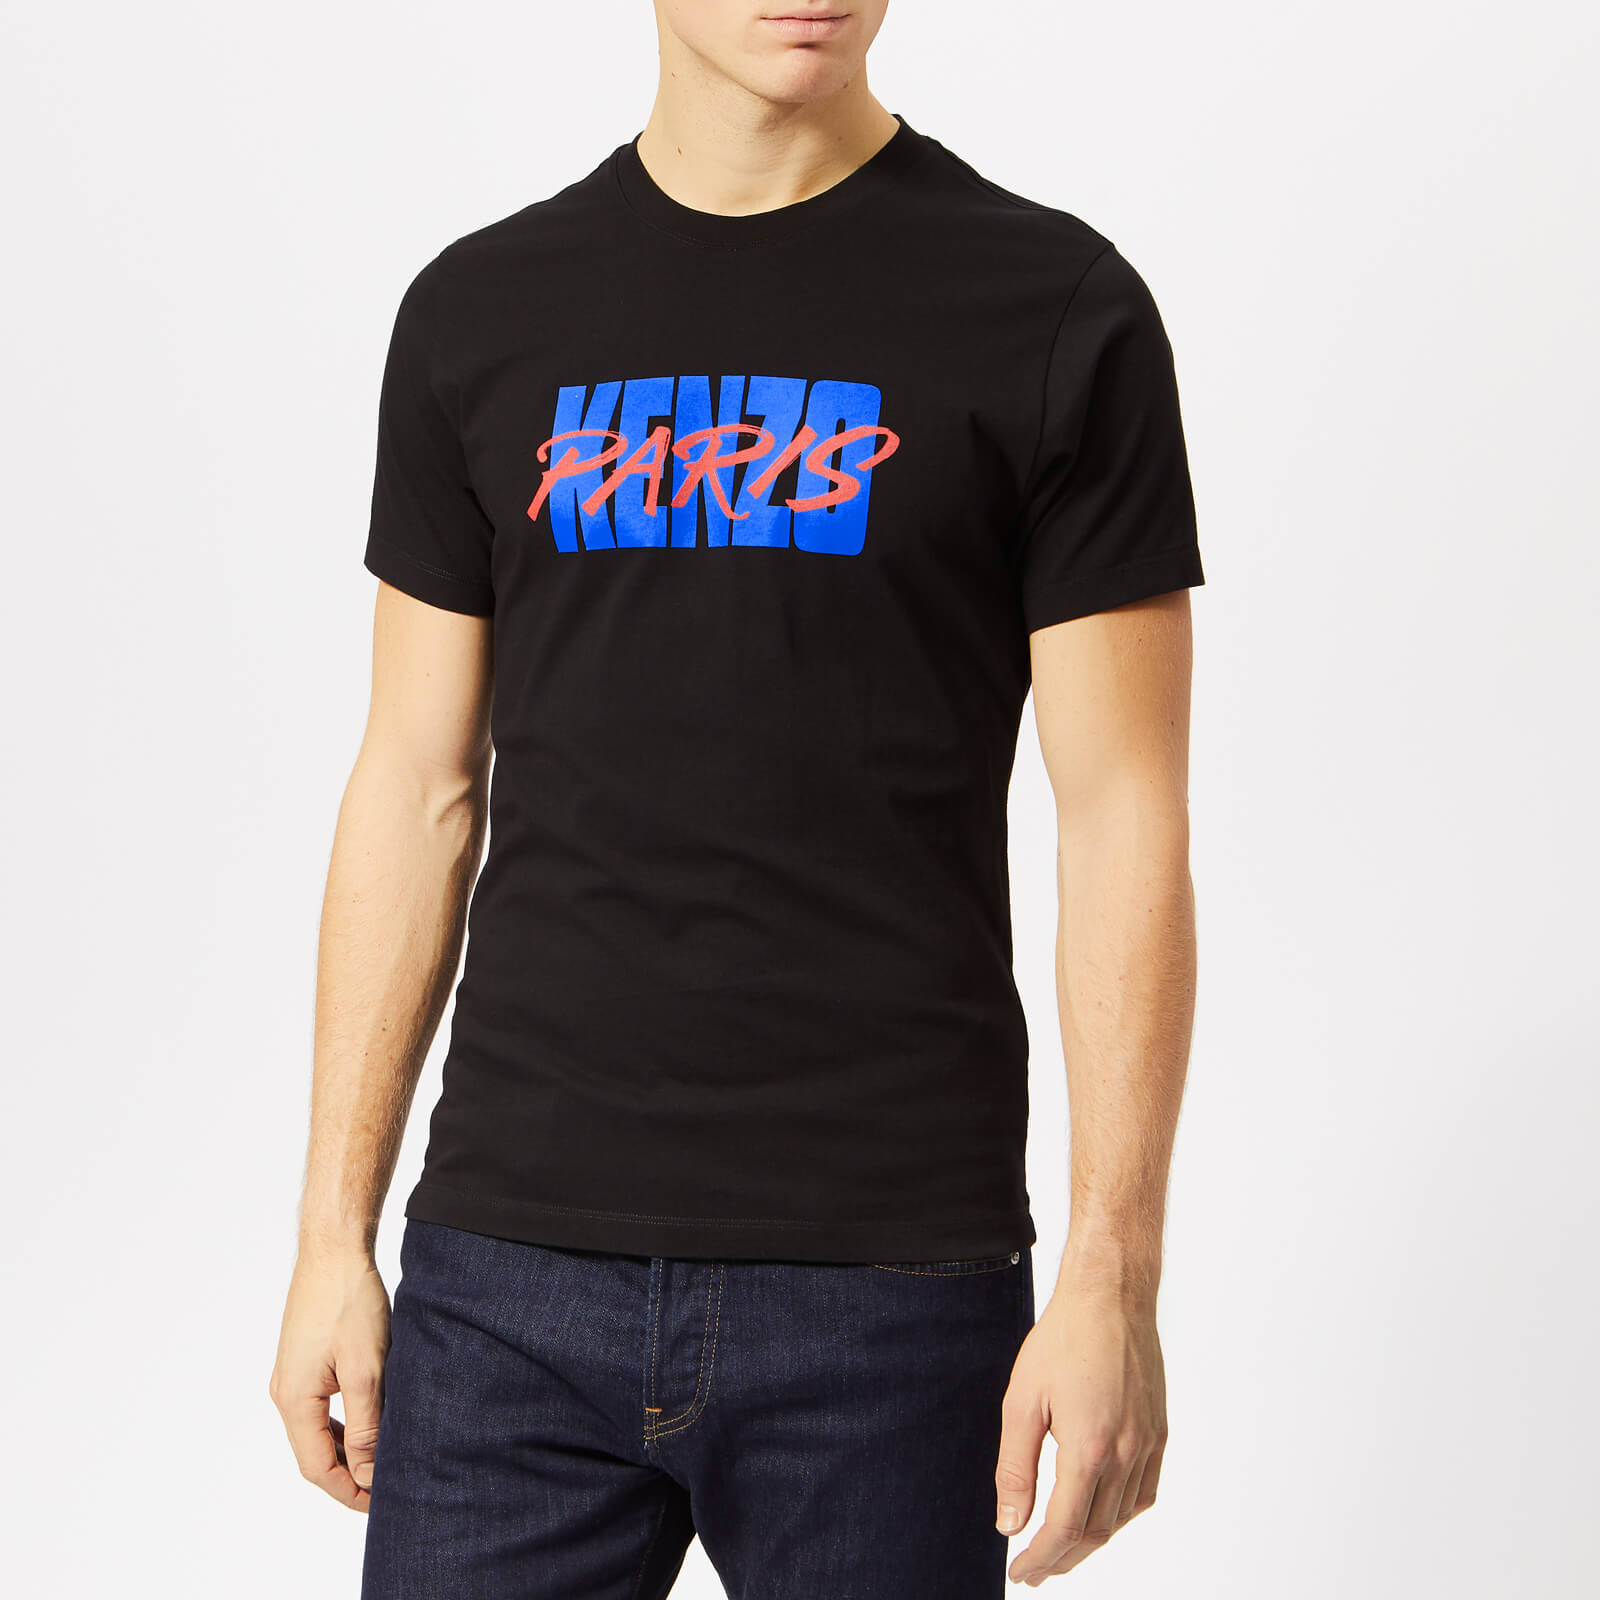 e4da49a0 KENZO Men's Paris Logo T-Shirt - Black - Free UK Delivery over £50